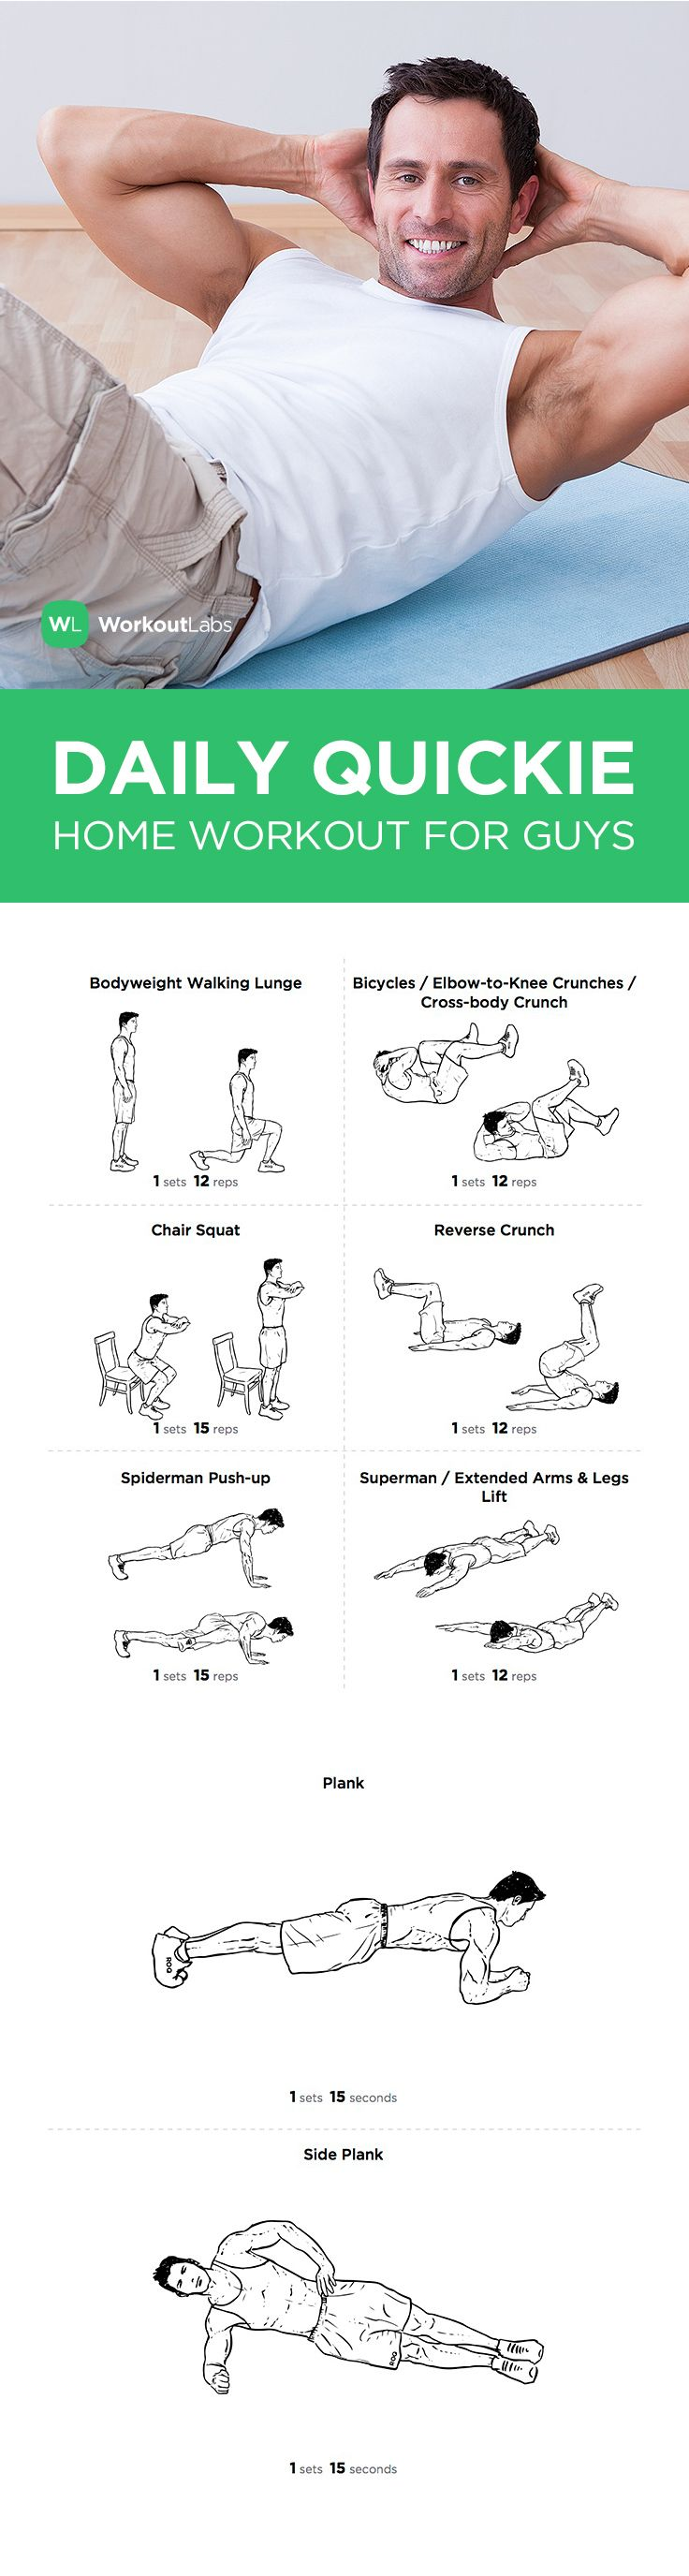 Visit http://WorkoutLabs.com/workout-plans/daily-quickie-essential-at-home-workout-for-guys/ for a FREE PDF of this Daily Quickie Essential at Home Workout for Guys